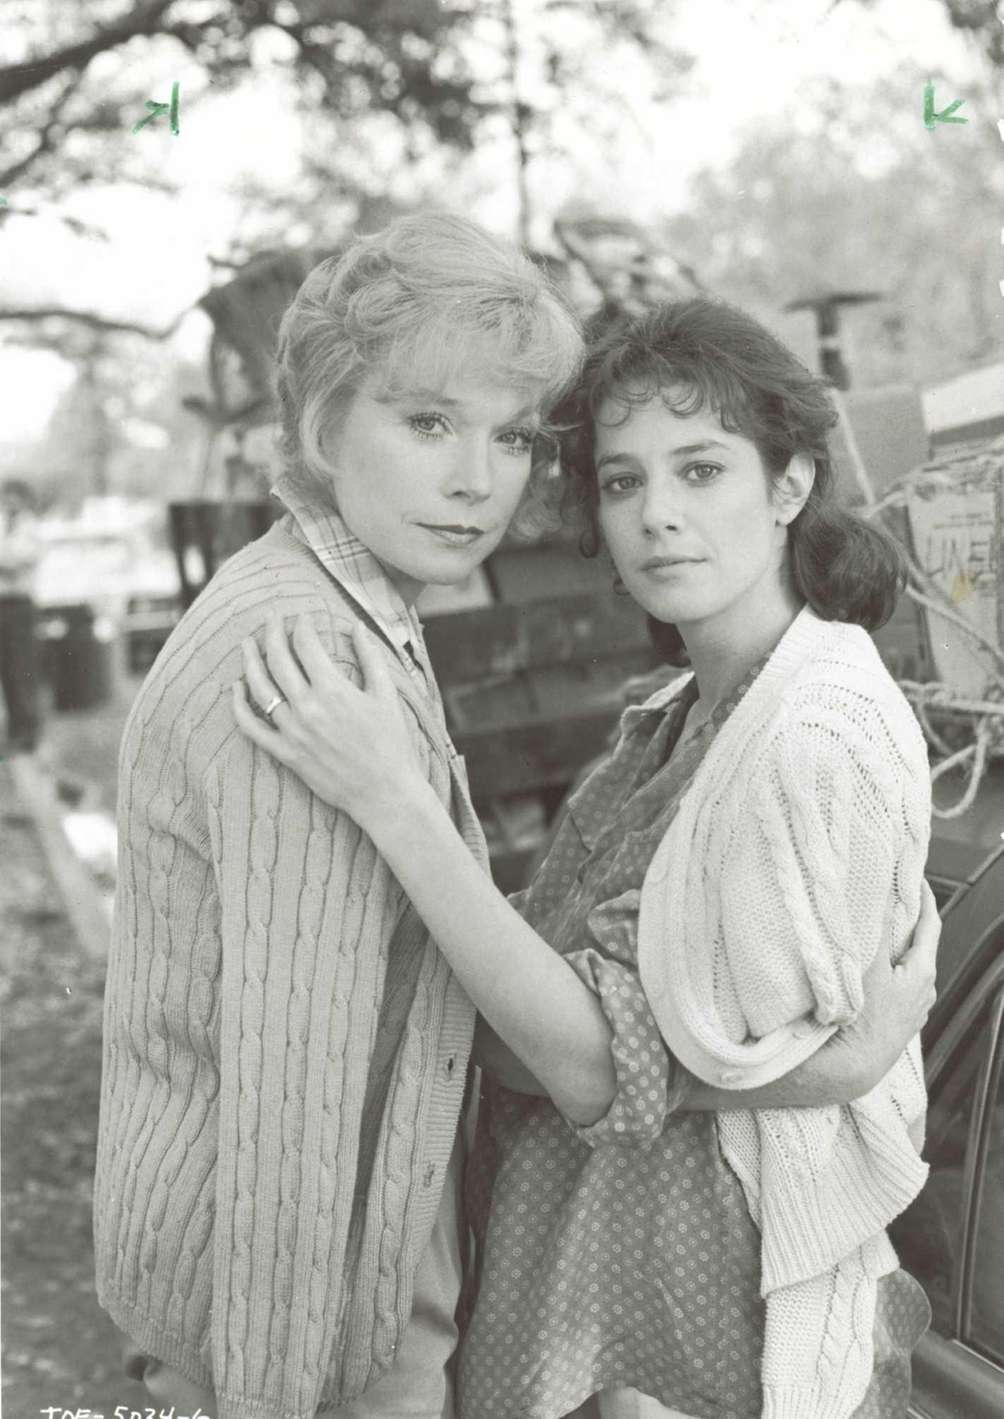 Shirley MacLaine (left) and Debra Winger (right), in